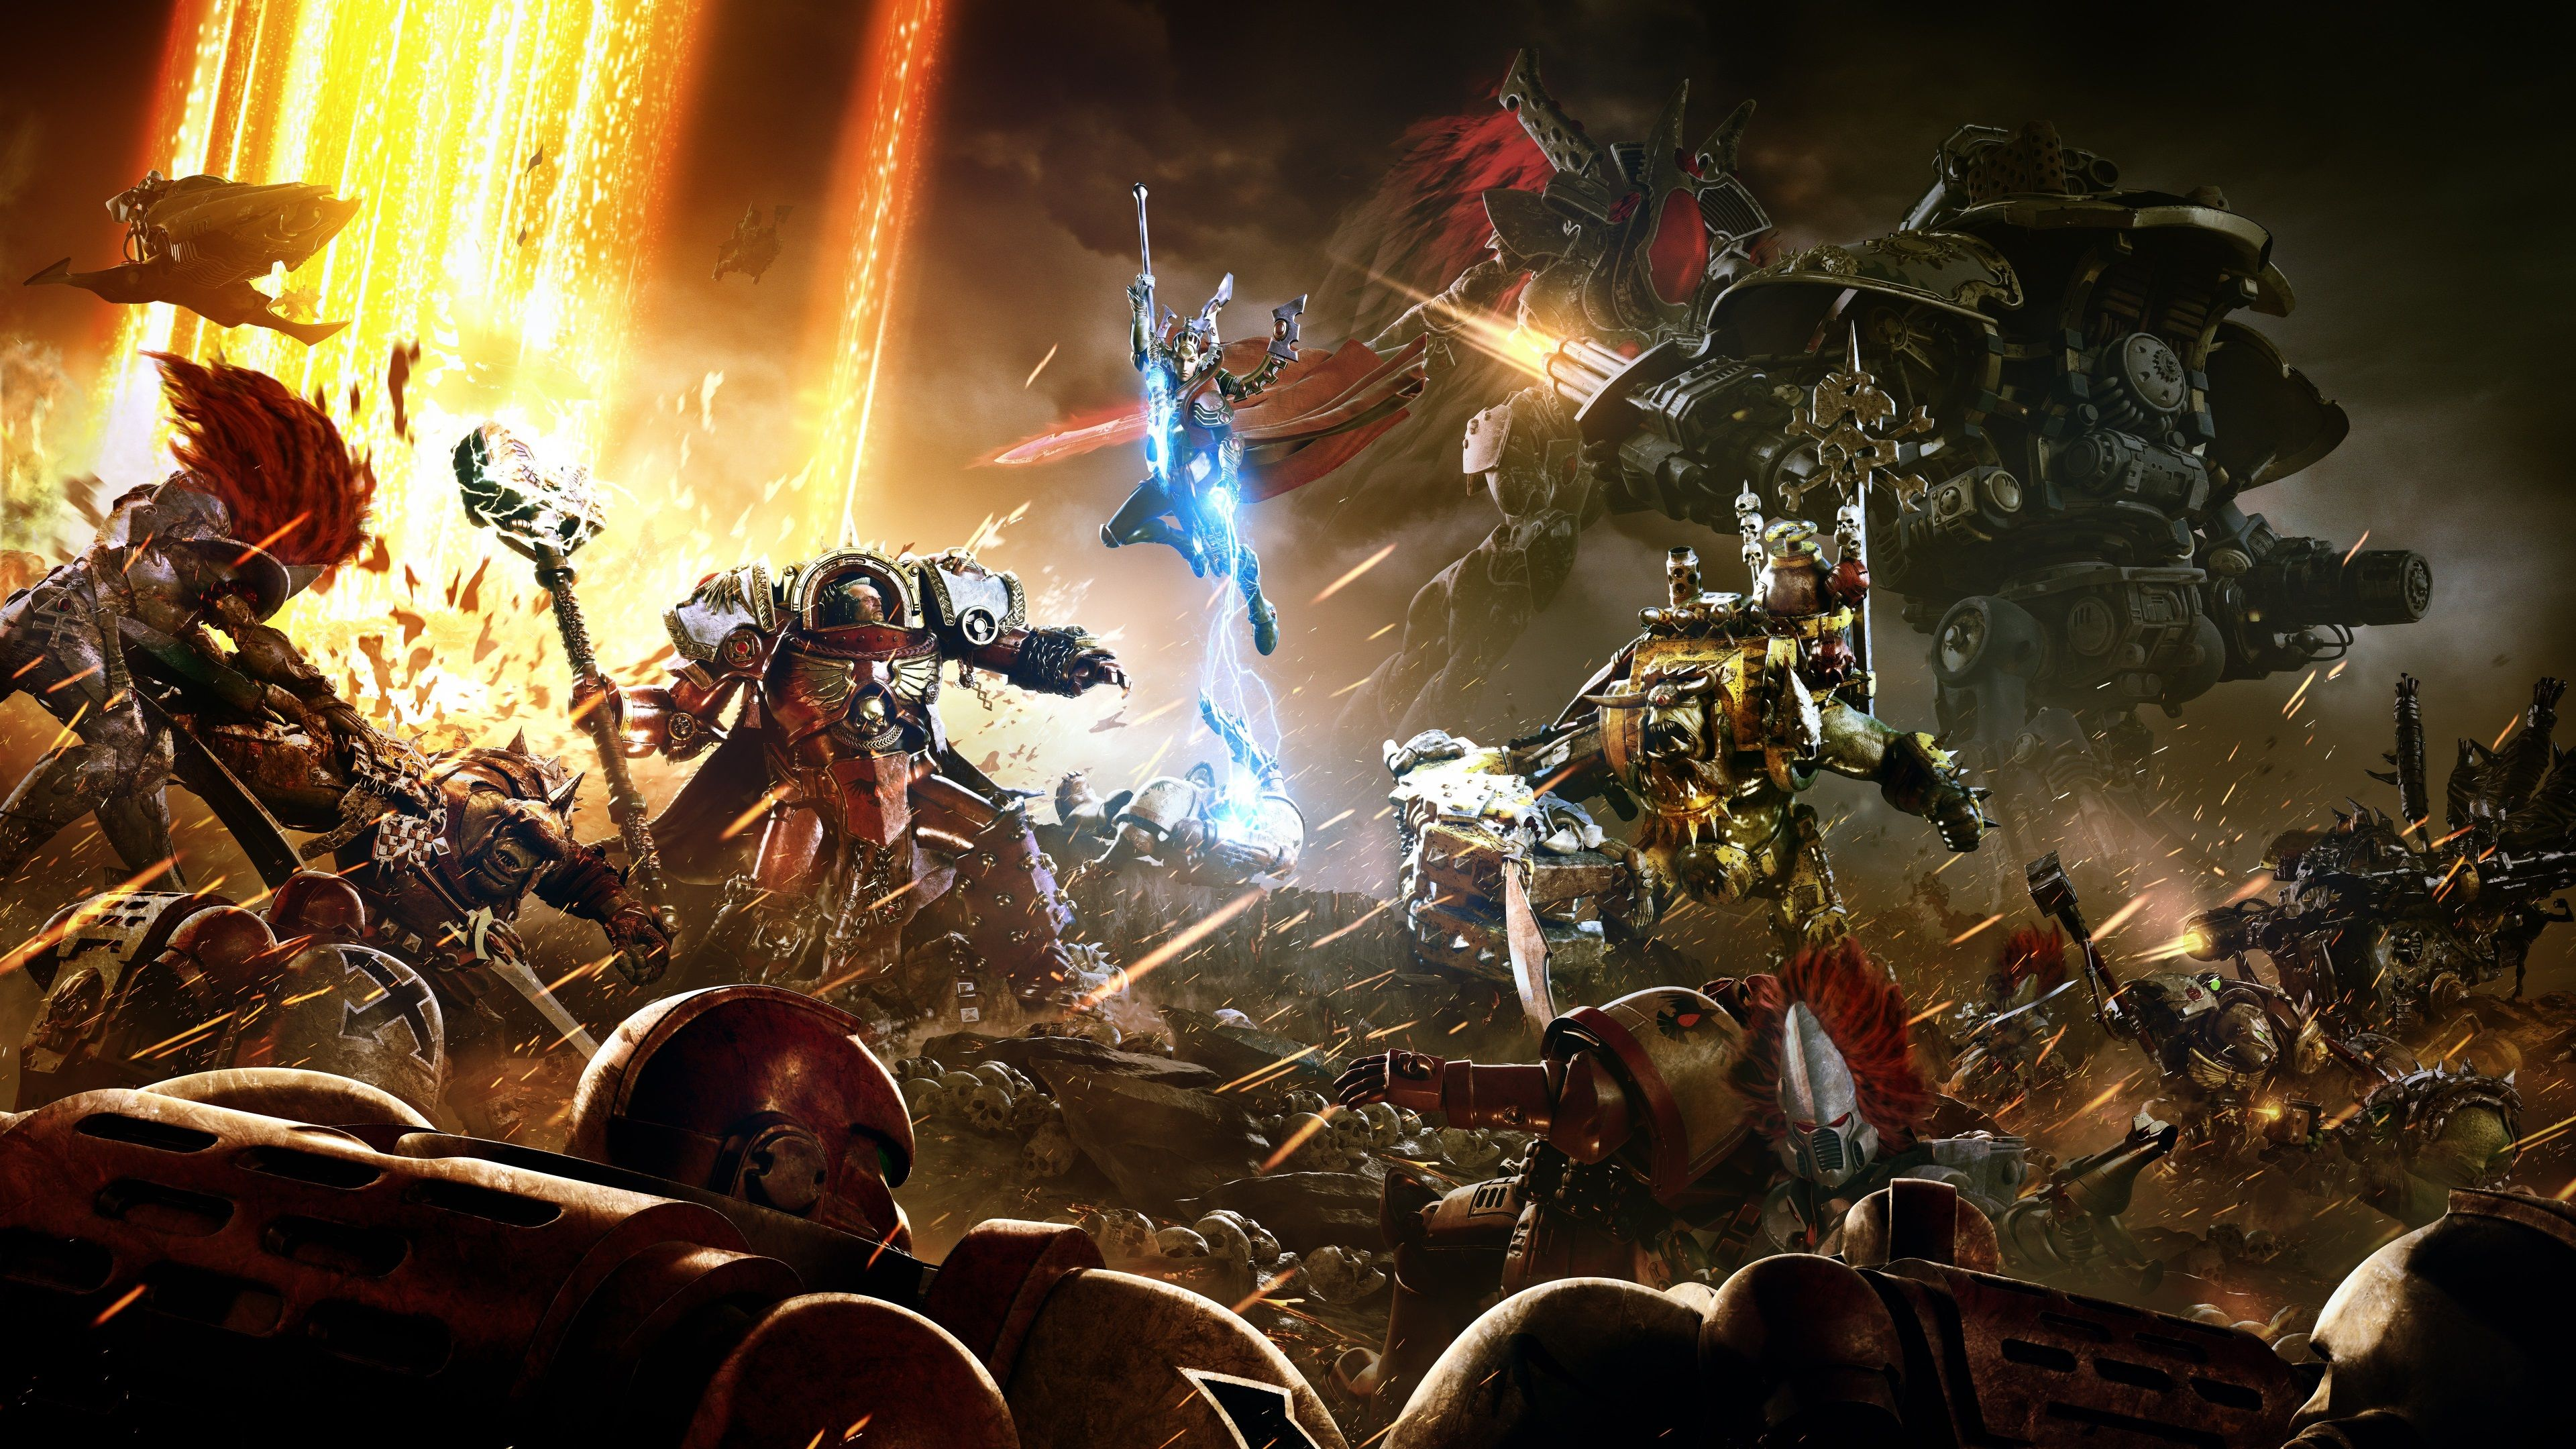 3840x2160 Warhammer 40k 4k Wallpaper Pc Full Hd Warhammer 40k Warhammer Warhammer 40k Artwork